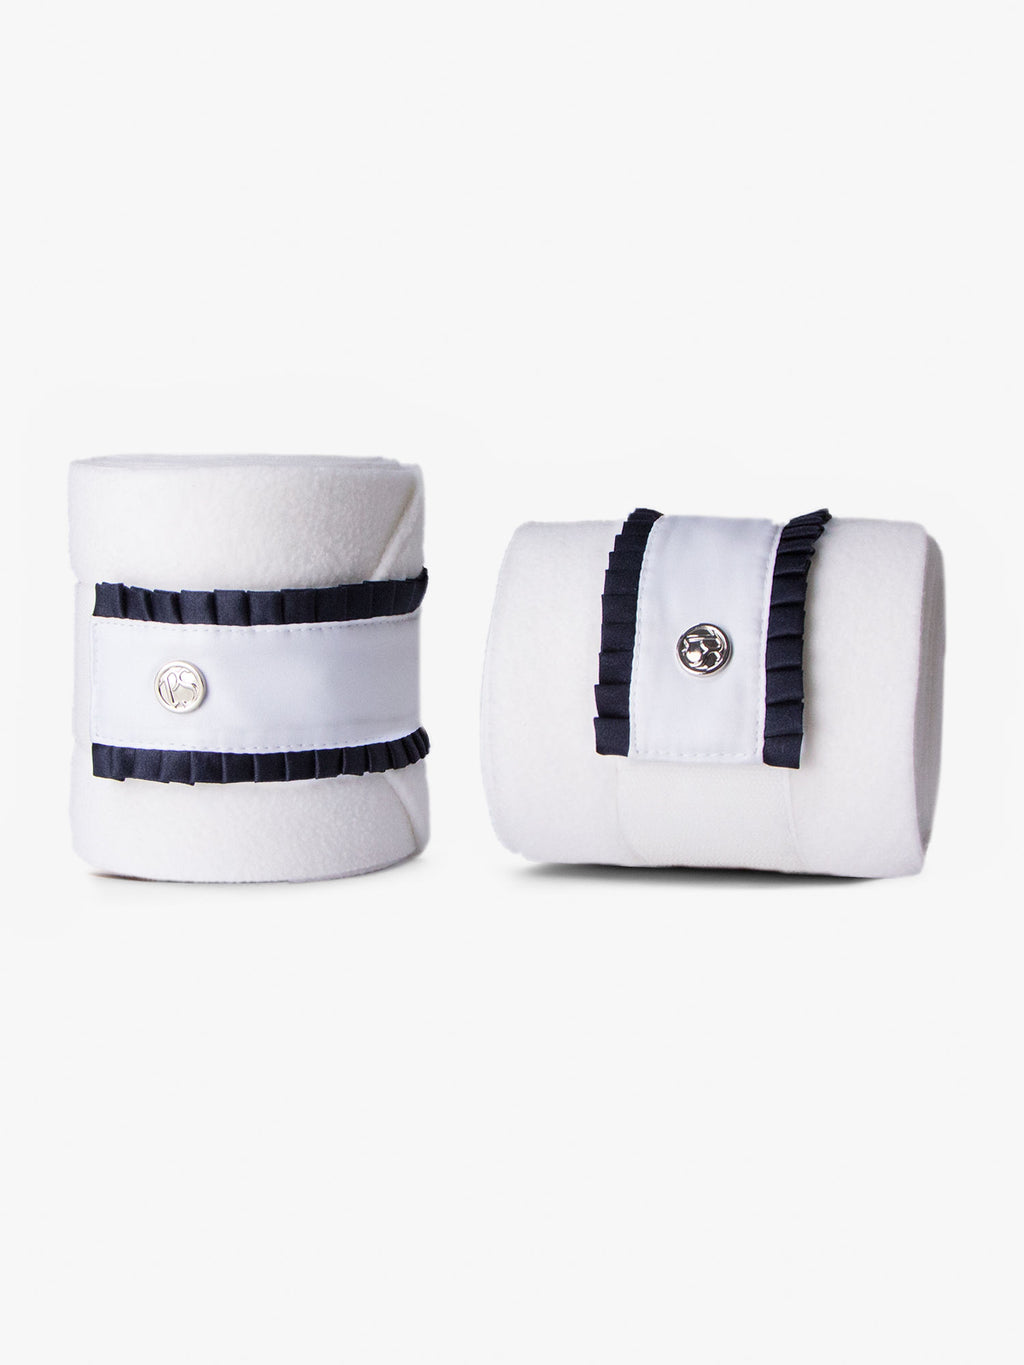 PS of Sweden White with Navy Ruffle Bandages